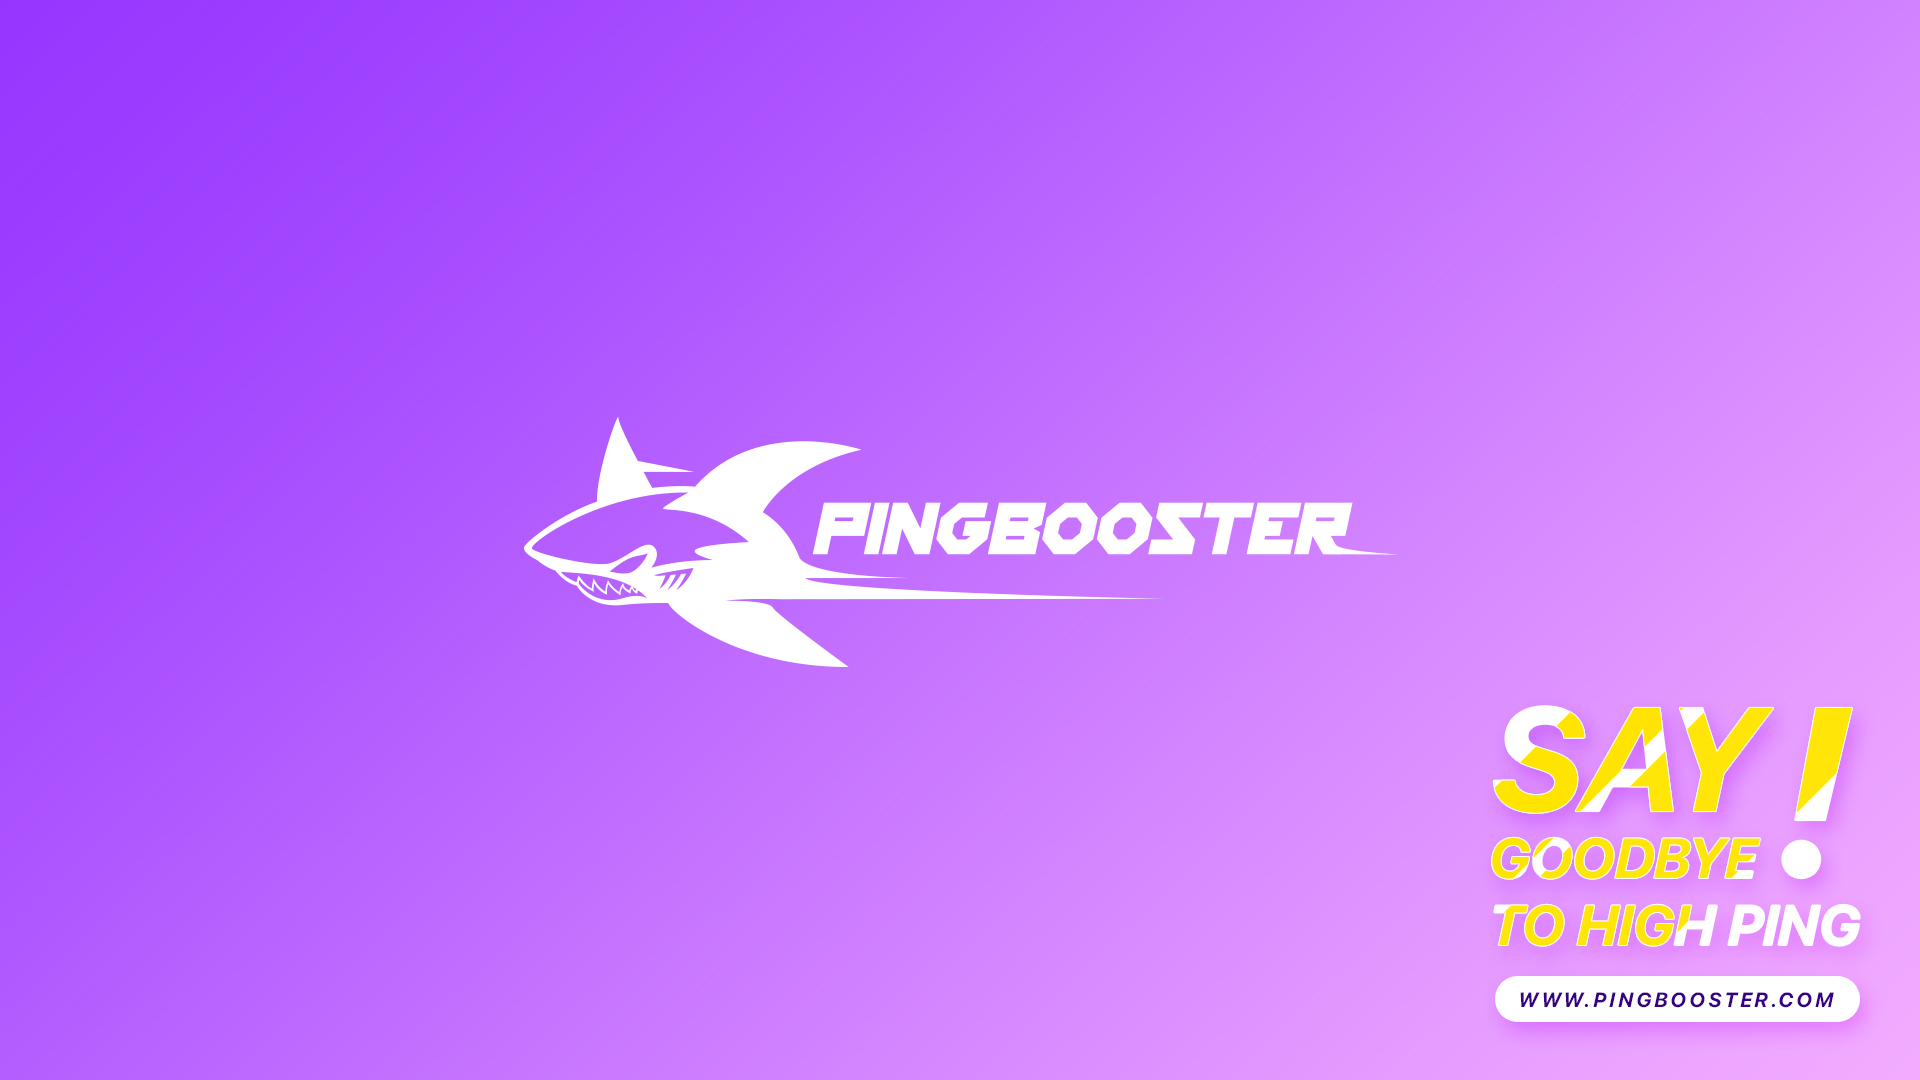 pingbooster-wallpaper